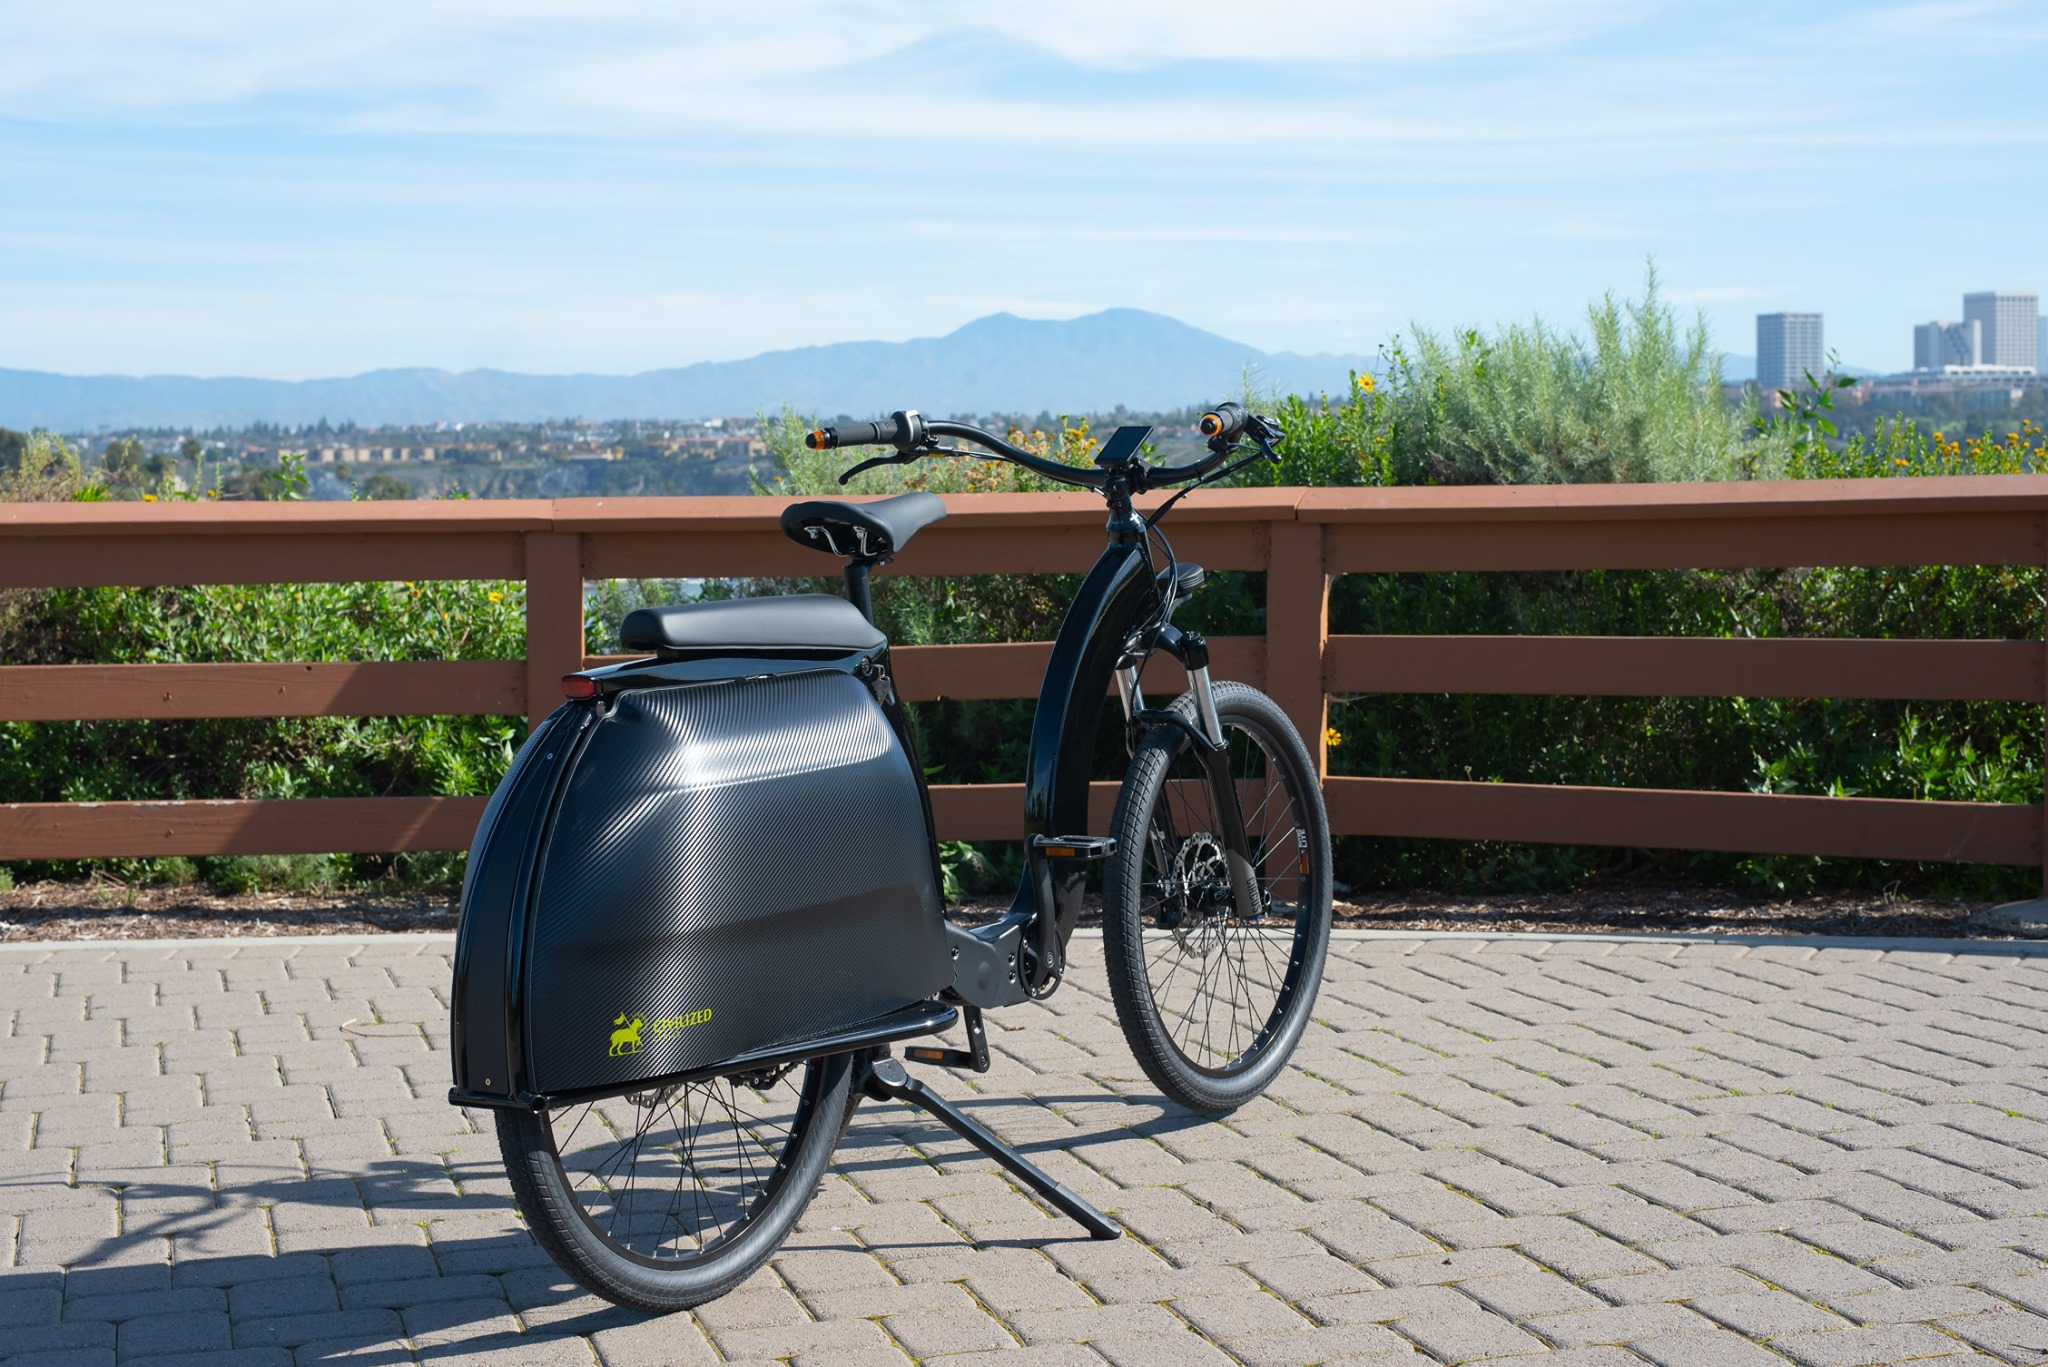 The integrated carbon fiber panniers can haul 50 lb of cargo